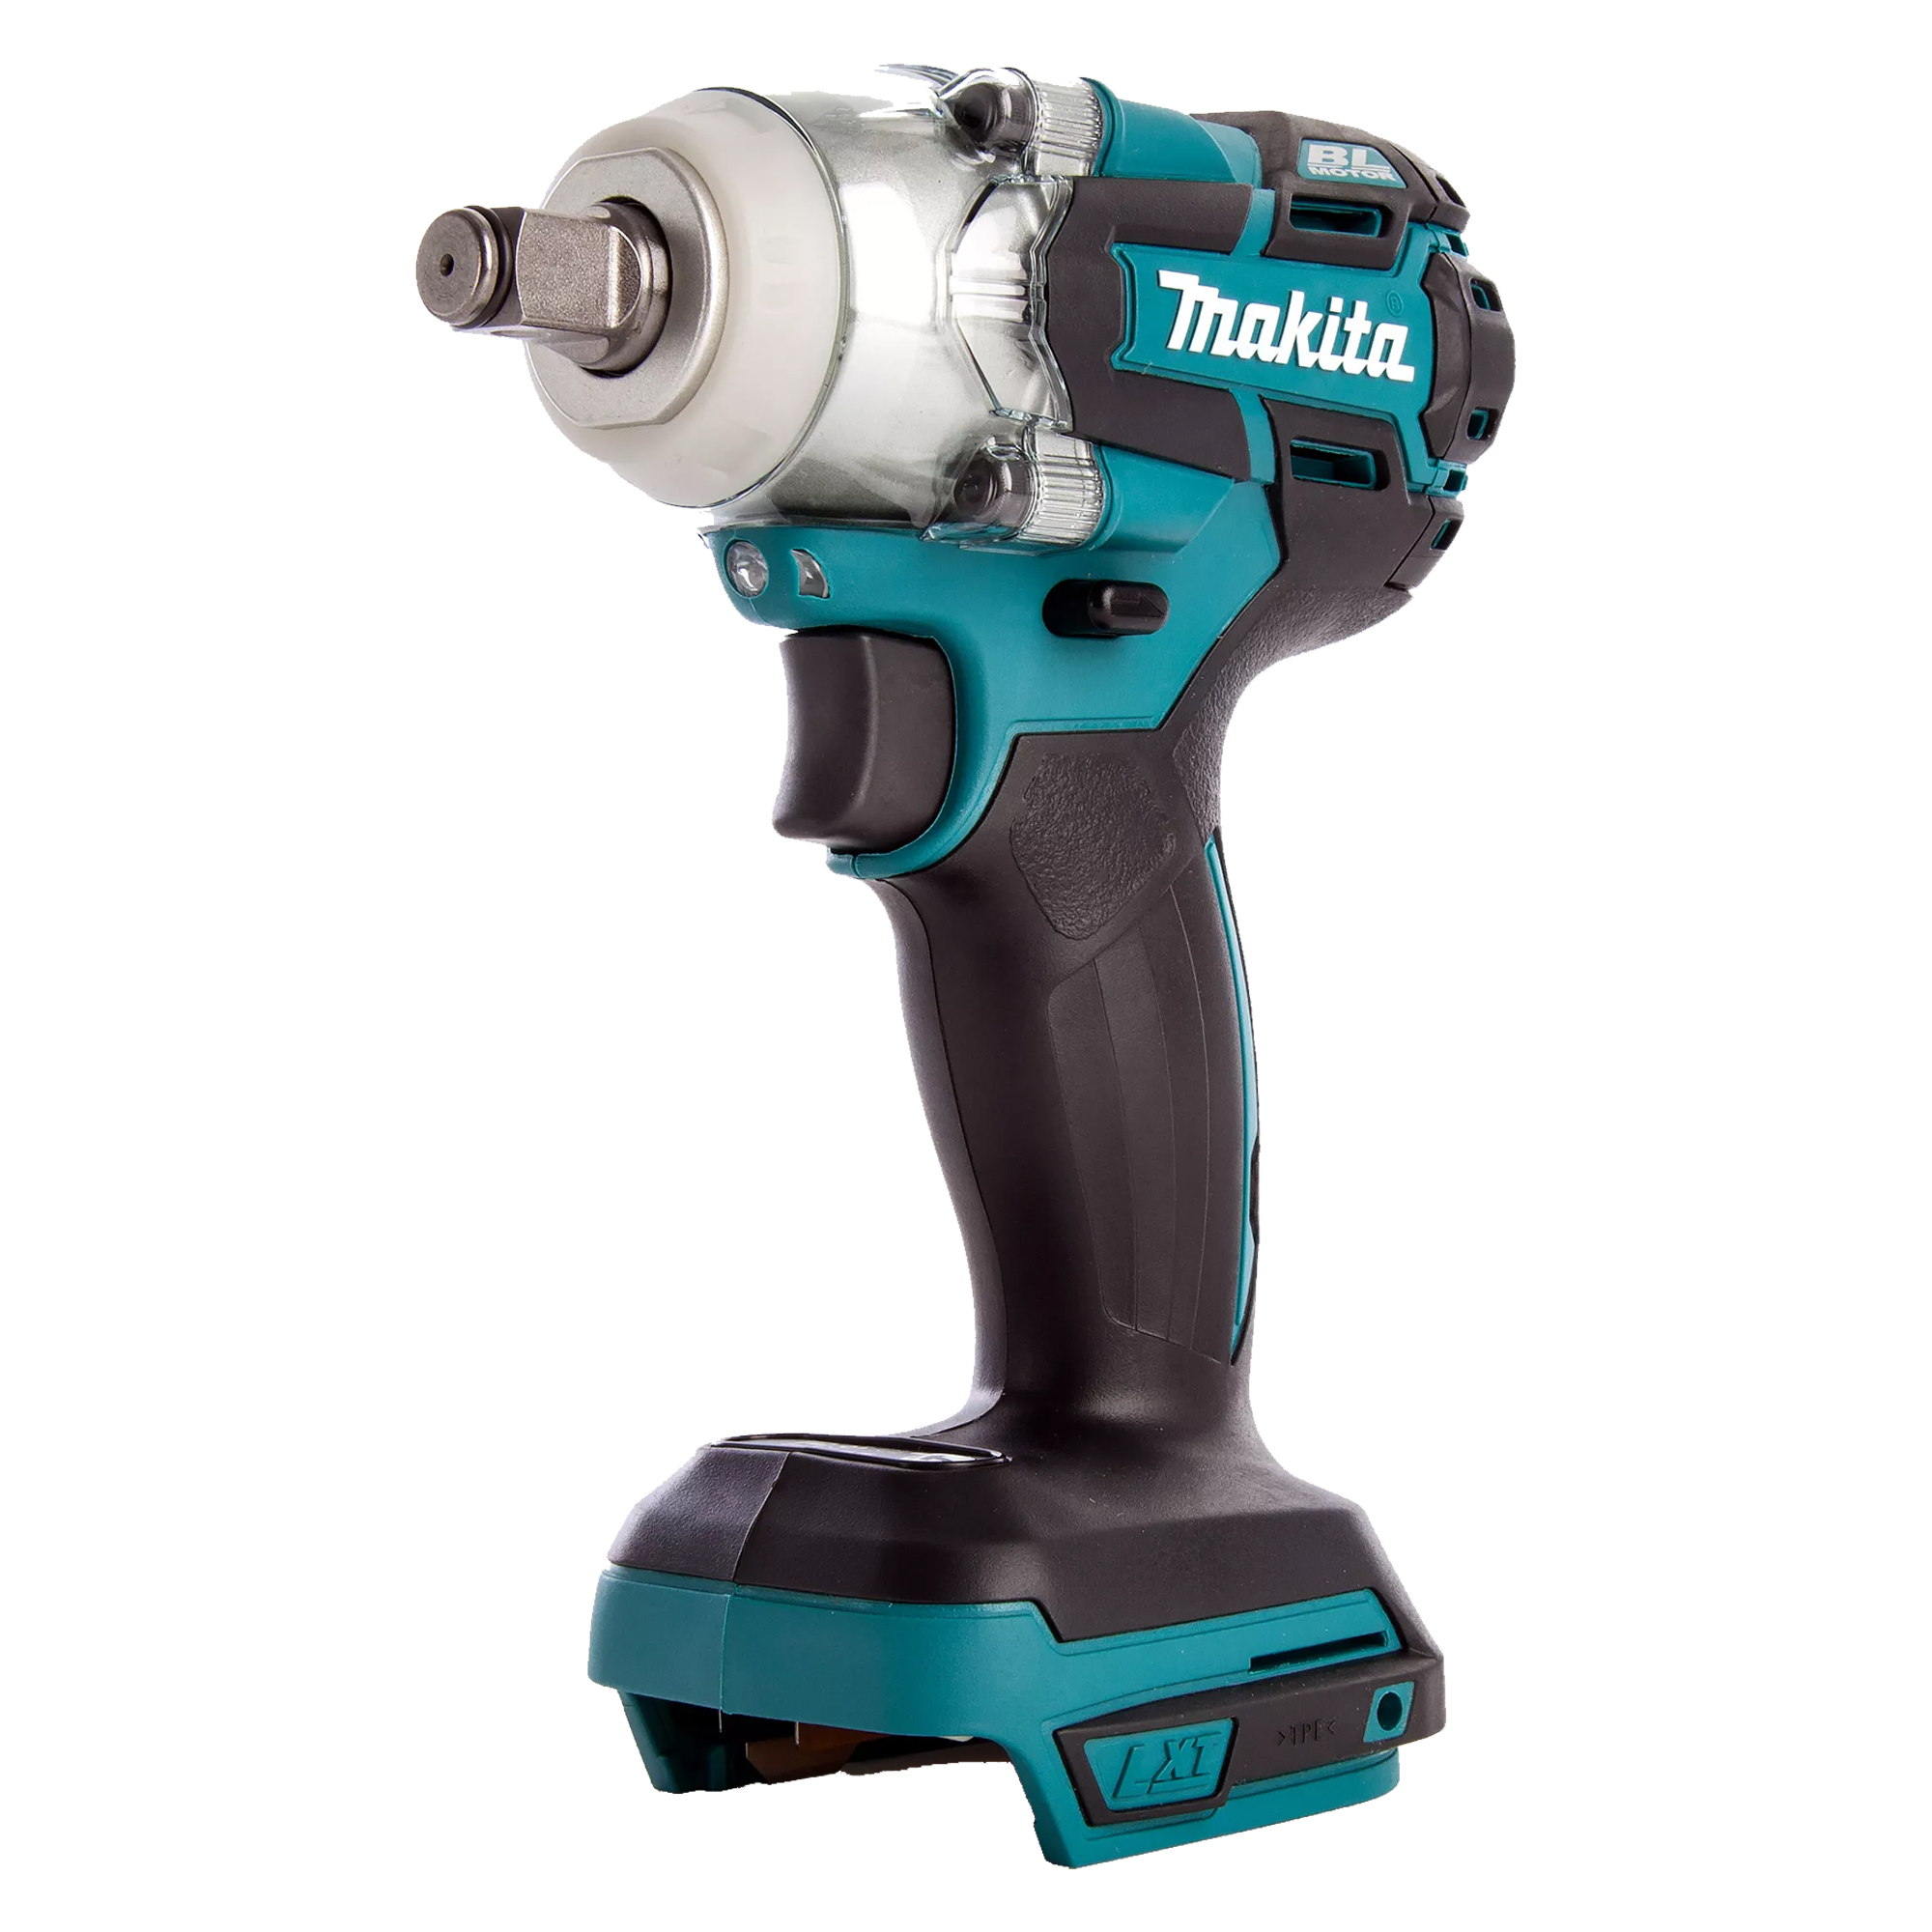 makita dtw285z makita 18v lithium ion impact wrench body. Black Bedroom Furniture Sets. Home Design Ideas